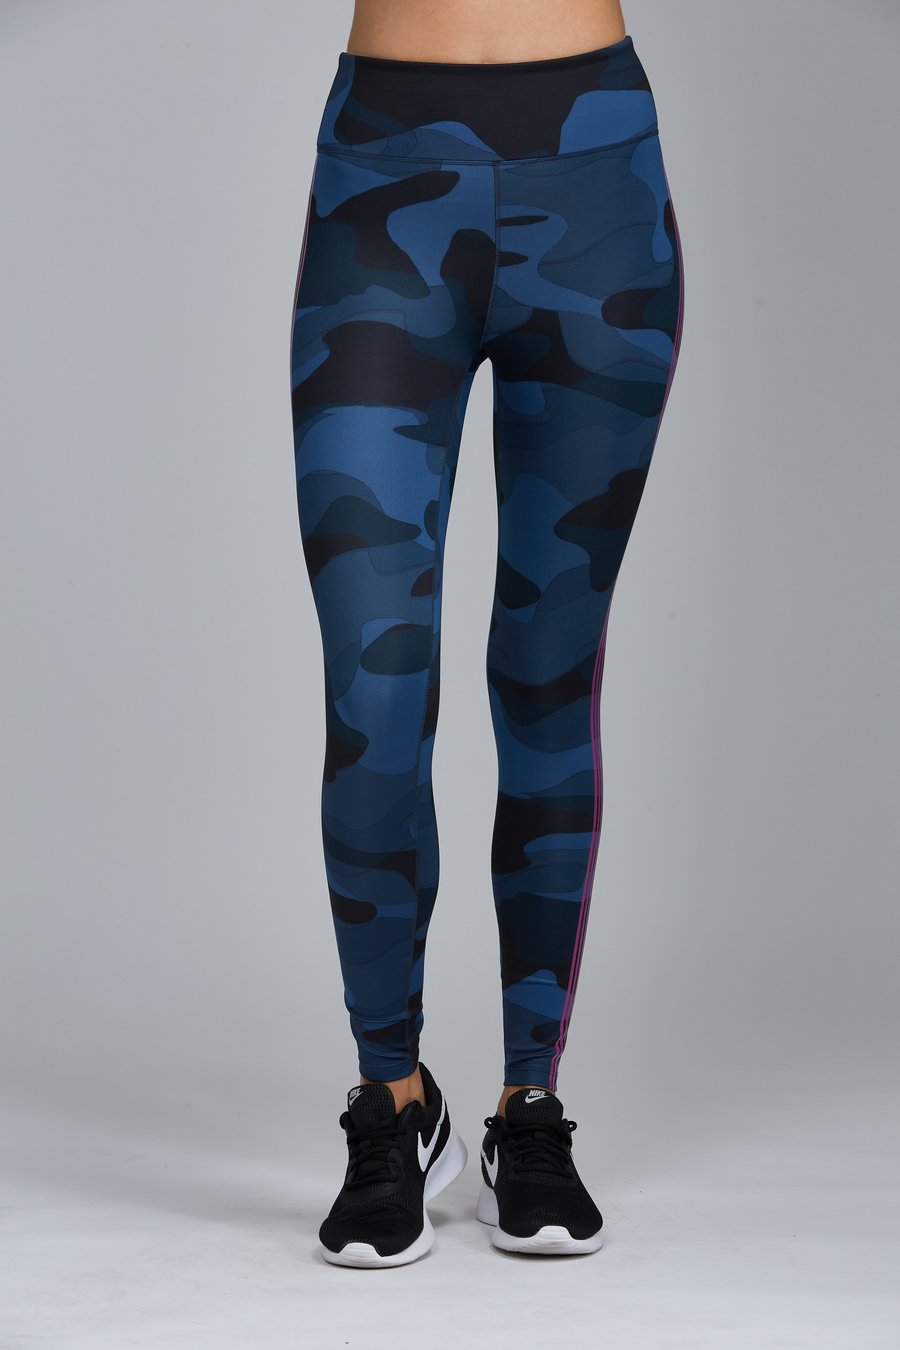 WARRIOR LEGGING | NOLI